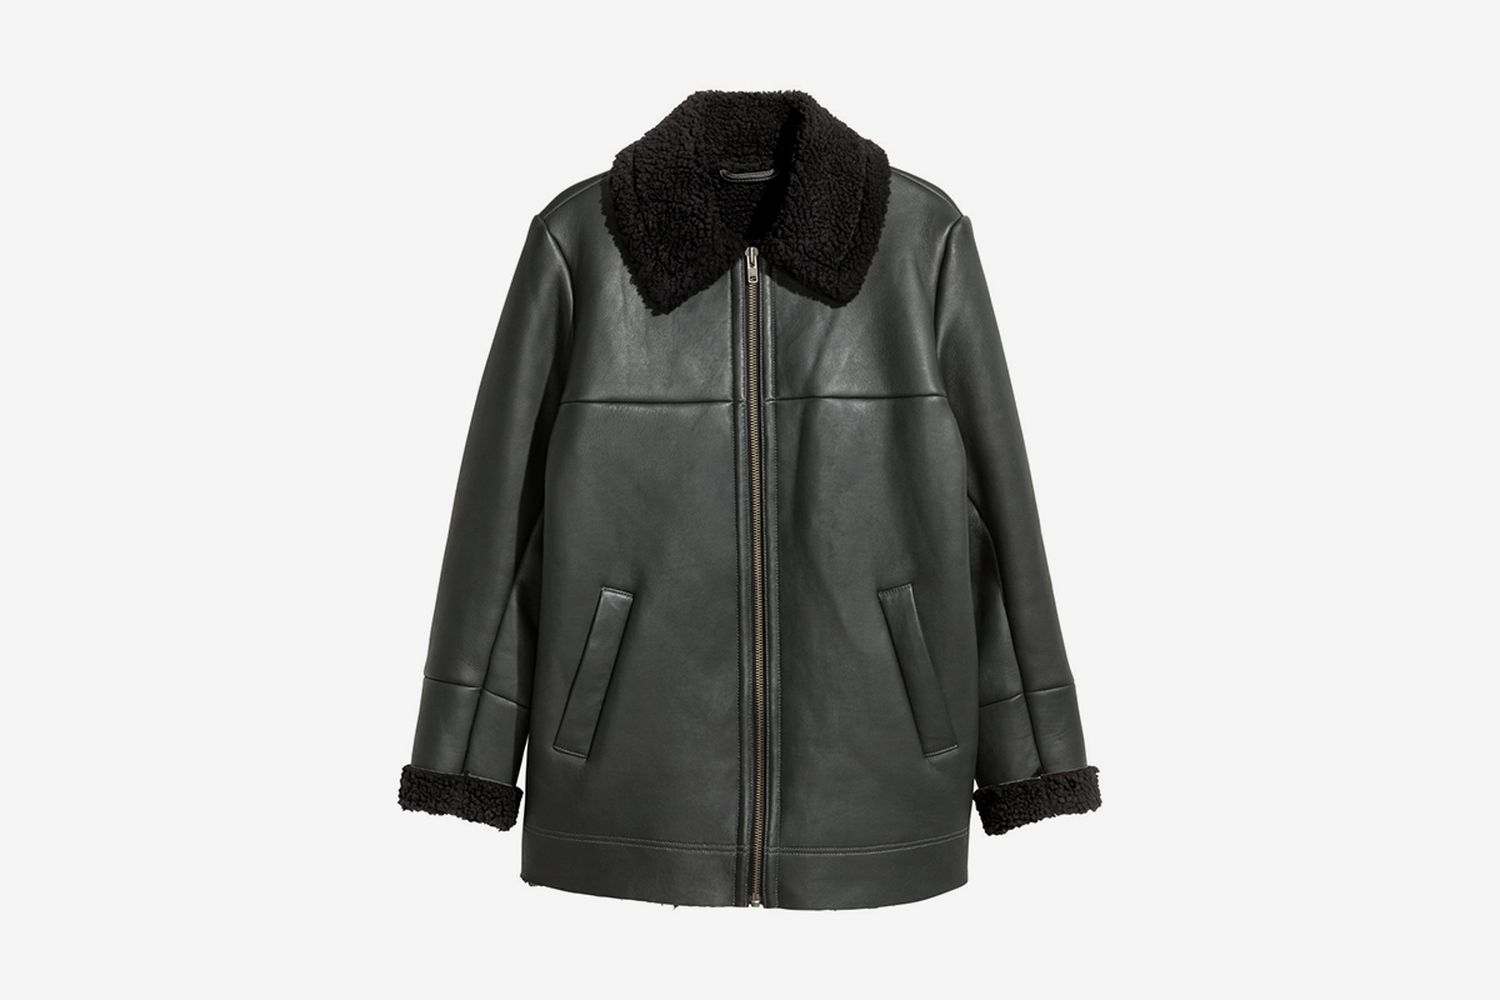 Pile-Lined Leather Jacket